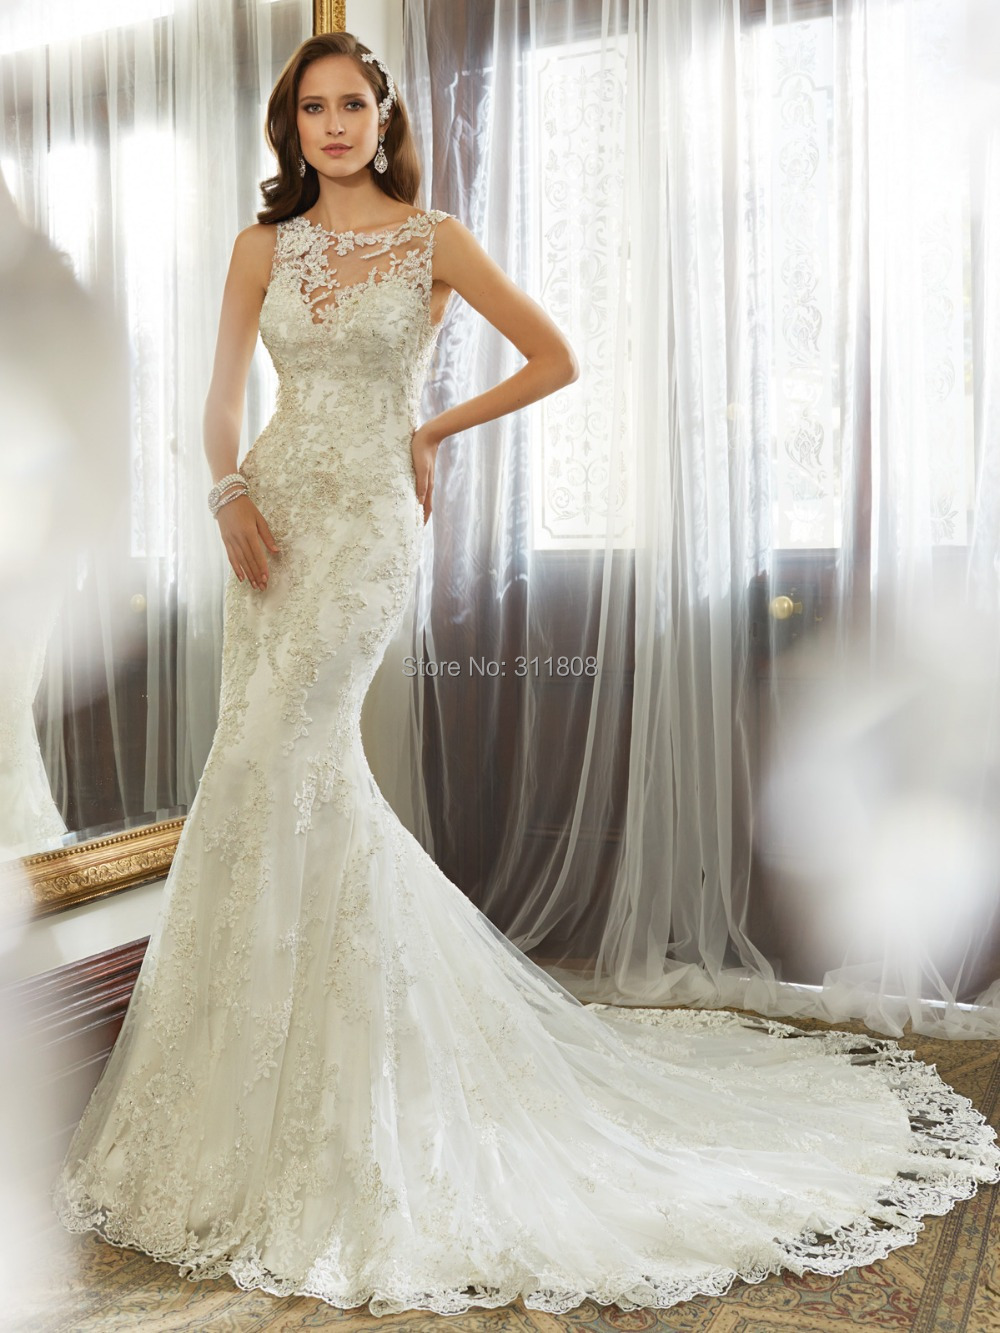 Mermaid bridal gowns high neck low back beaded lace for Beaded wedding dress designers